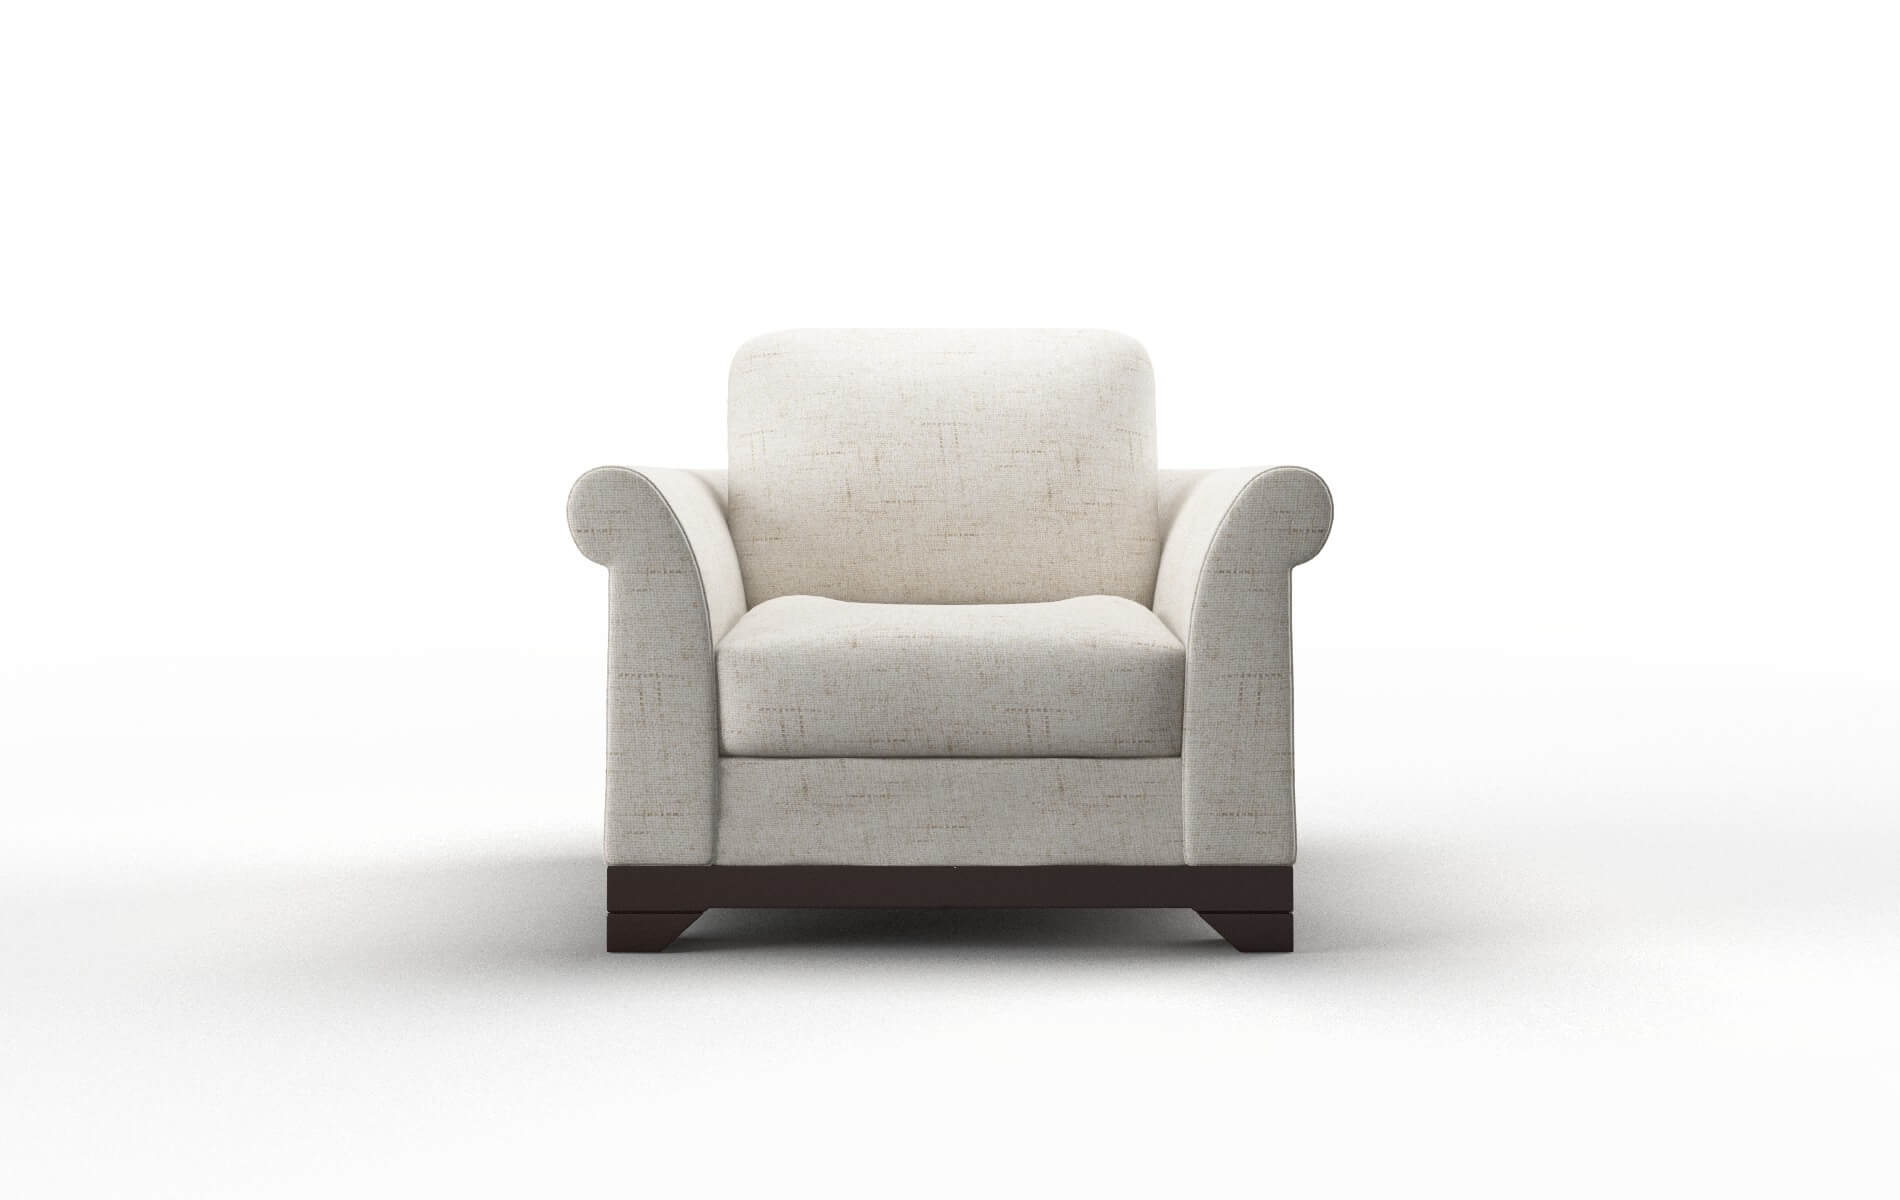 Denver Oceanside Natural chair espresso legs